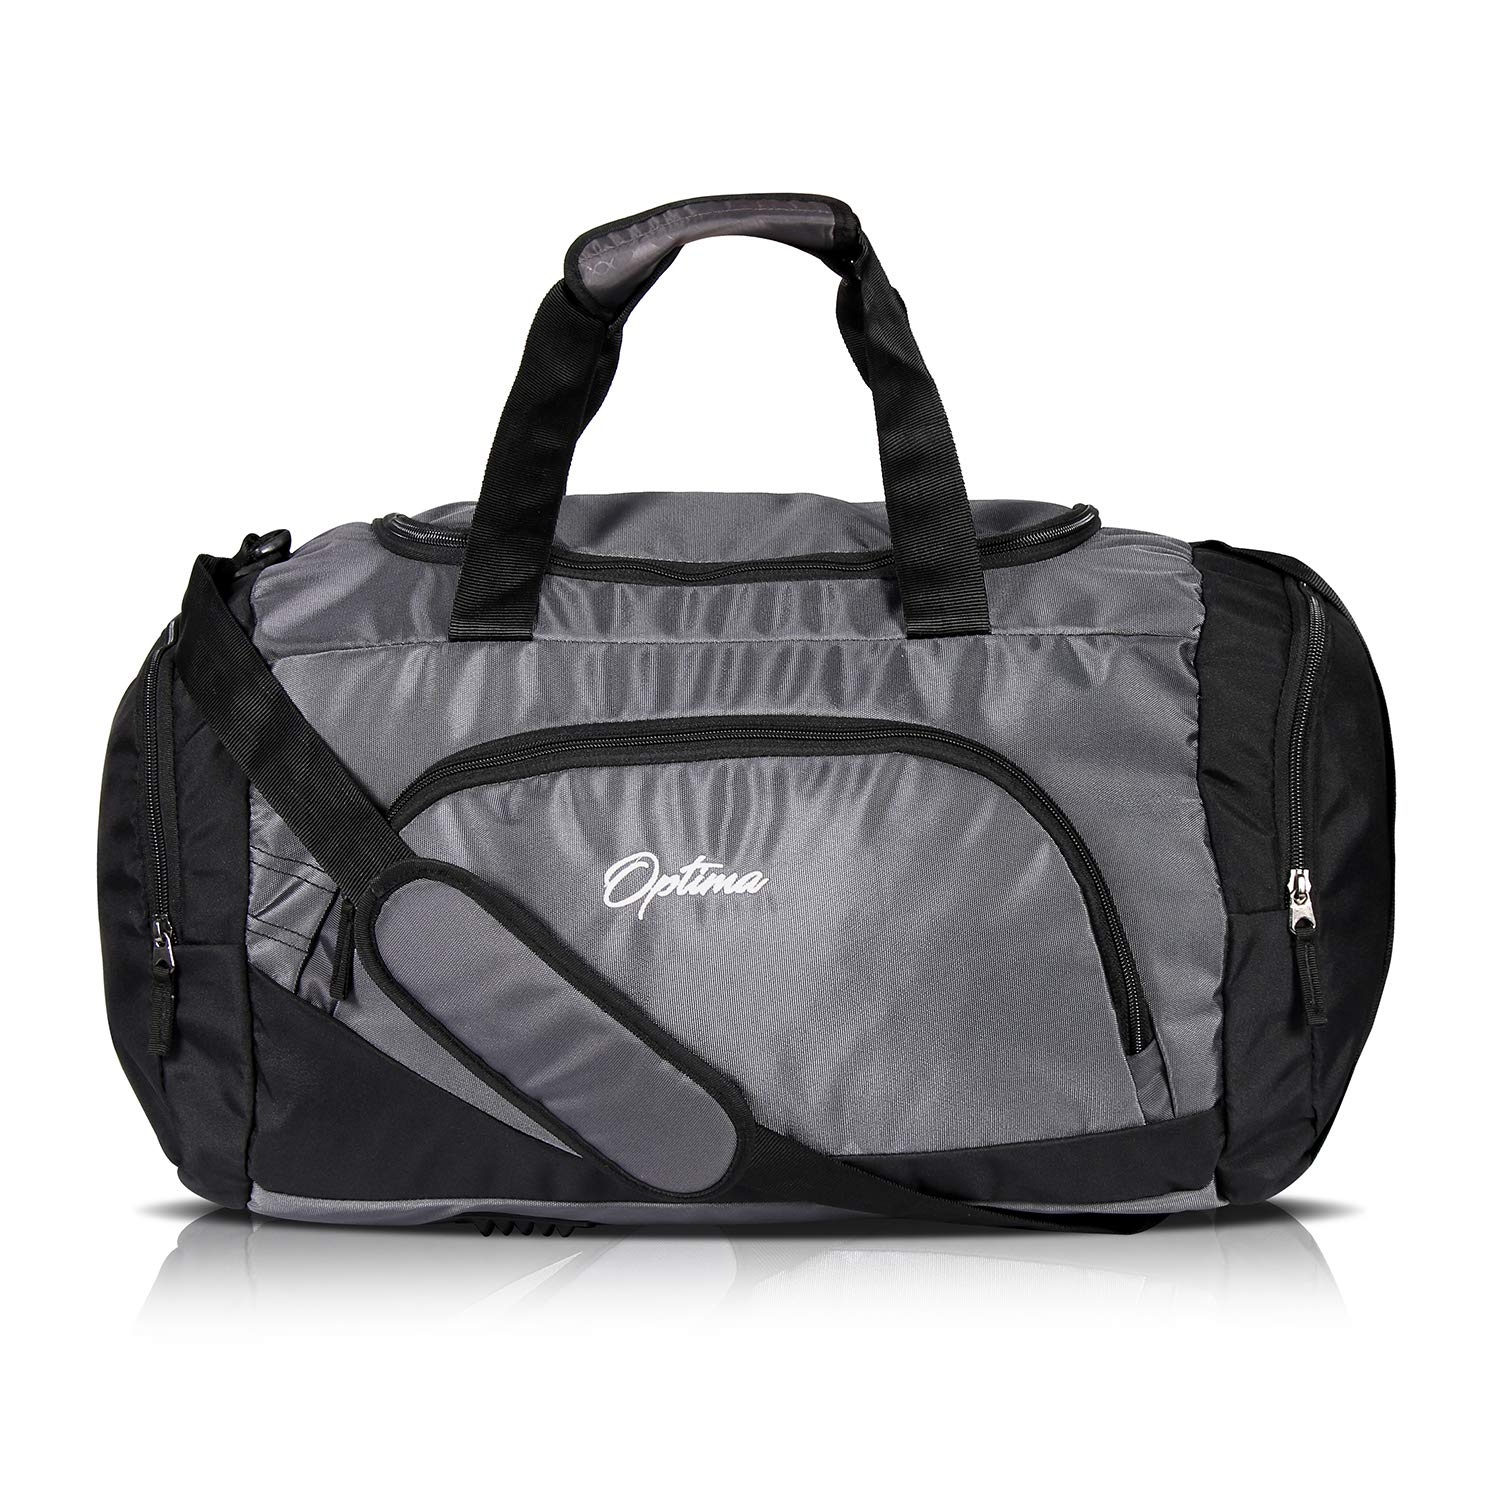 OPTIMA Polyester Duffle 31 L Small Travel Bag (Grey)  Amazon.in  Bags 7d8aab2ecb65c